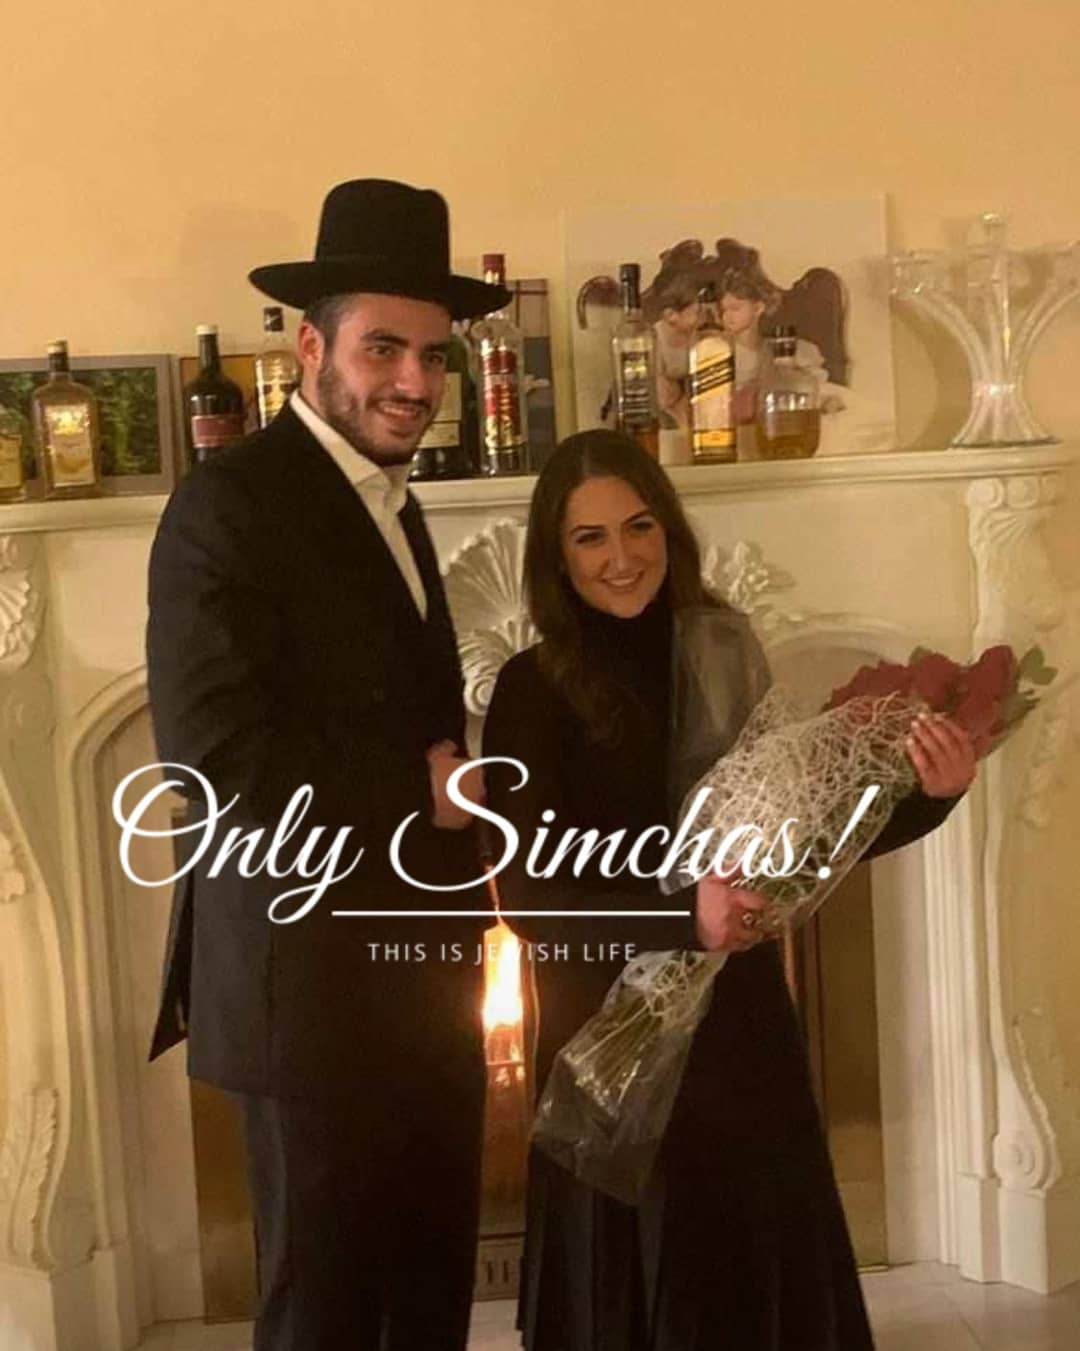 Engagement of Yummy Karmel (#Bp) to Malky Engelman! #onlysimchas